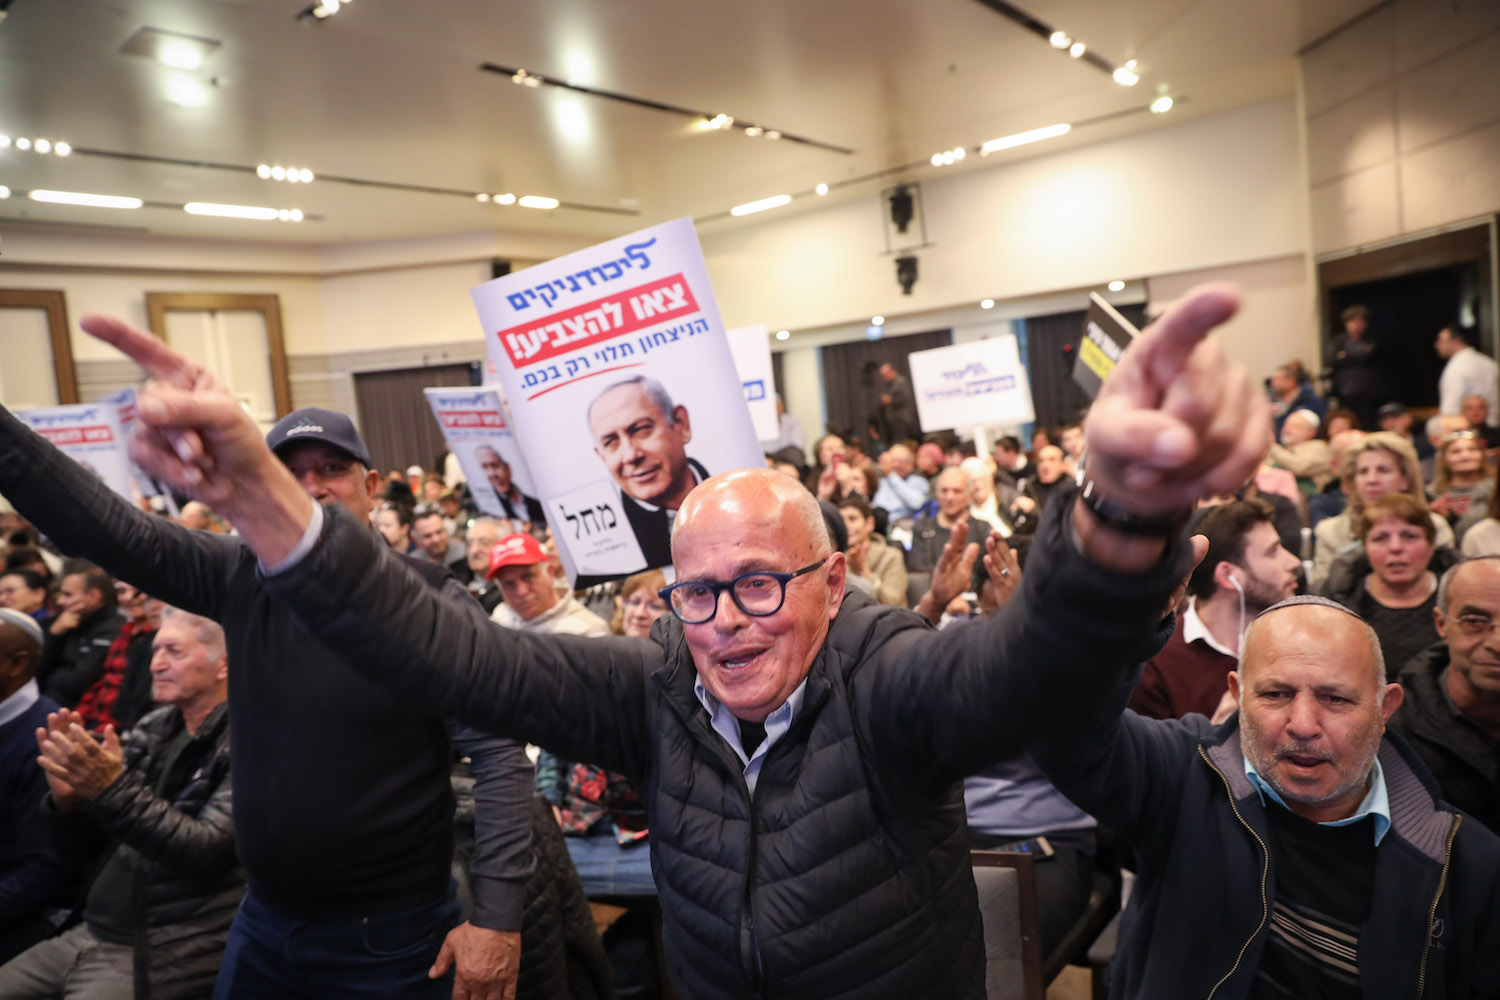 Likud supporters seen at a party rally in Jerusalem ahead of the Israeli general elections, February 26, 2020. (Olivier Fitoussi/Flash90)